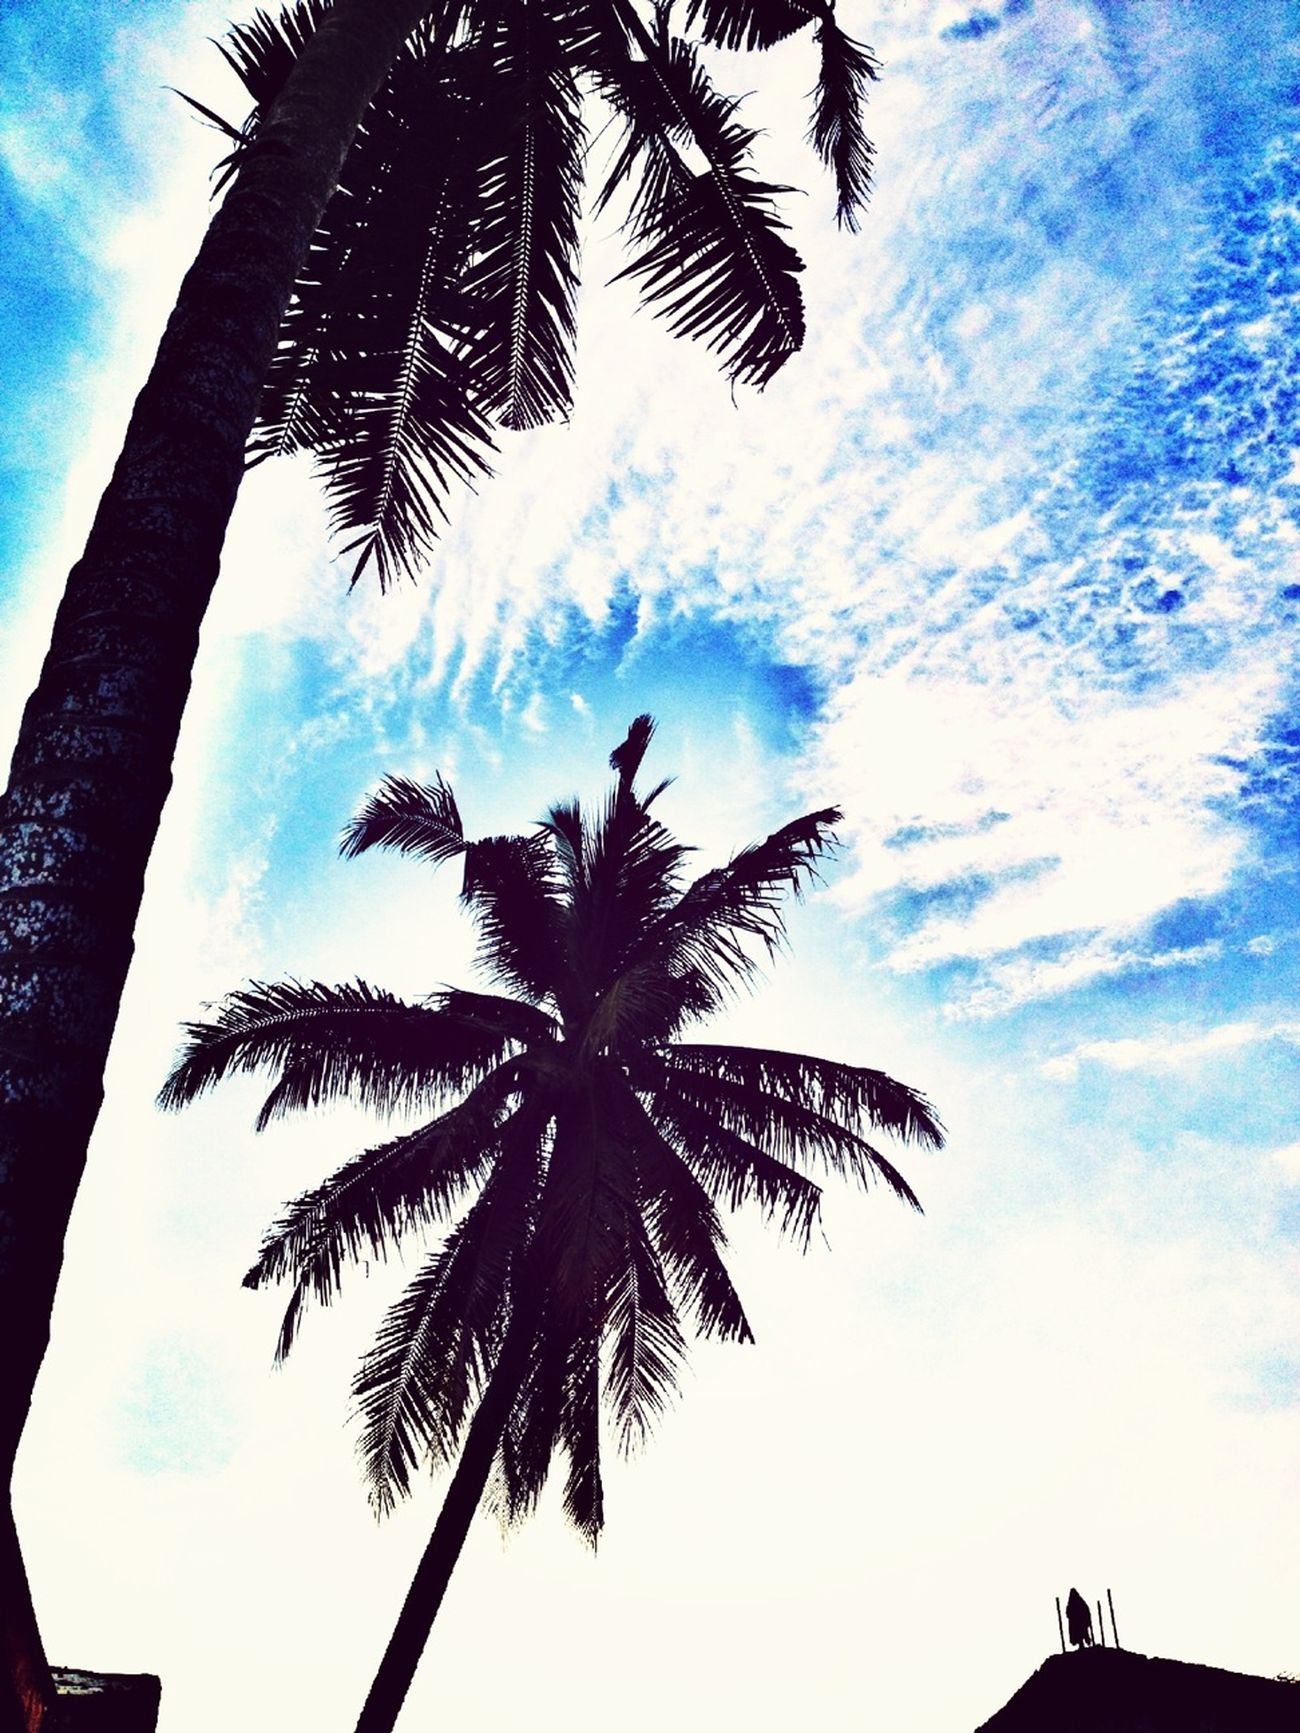 Palm Trees and Clouds Backgrounded by Blue Sky.